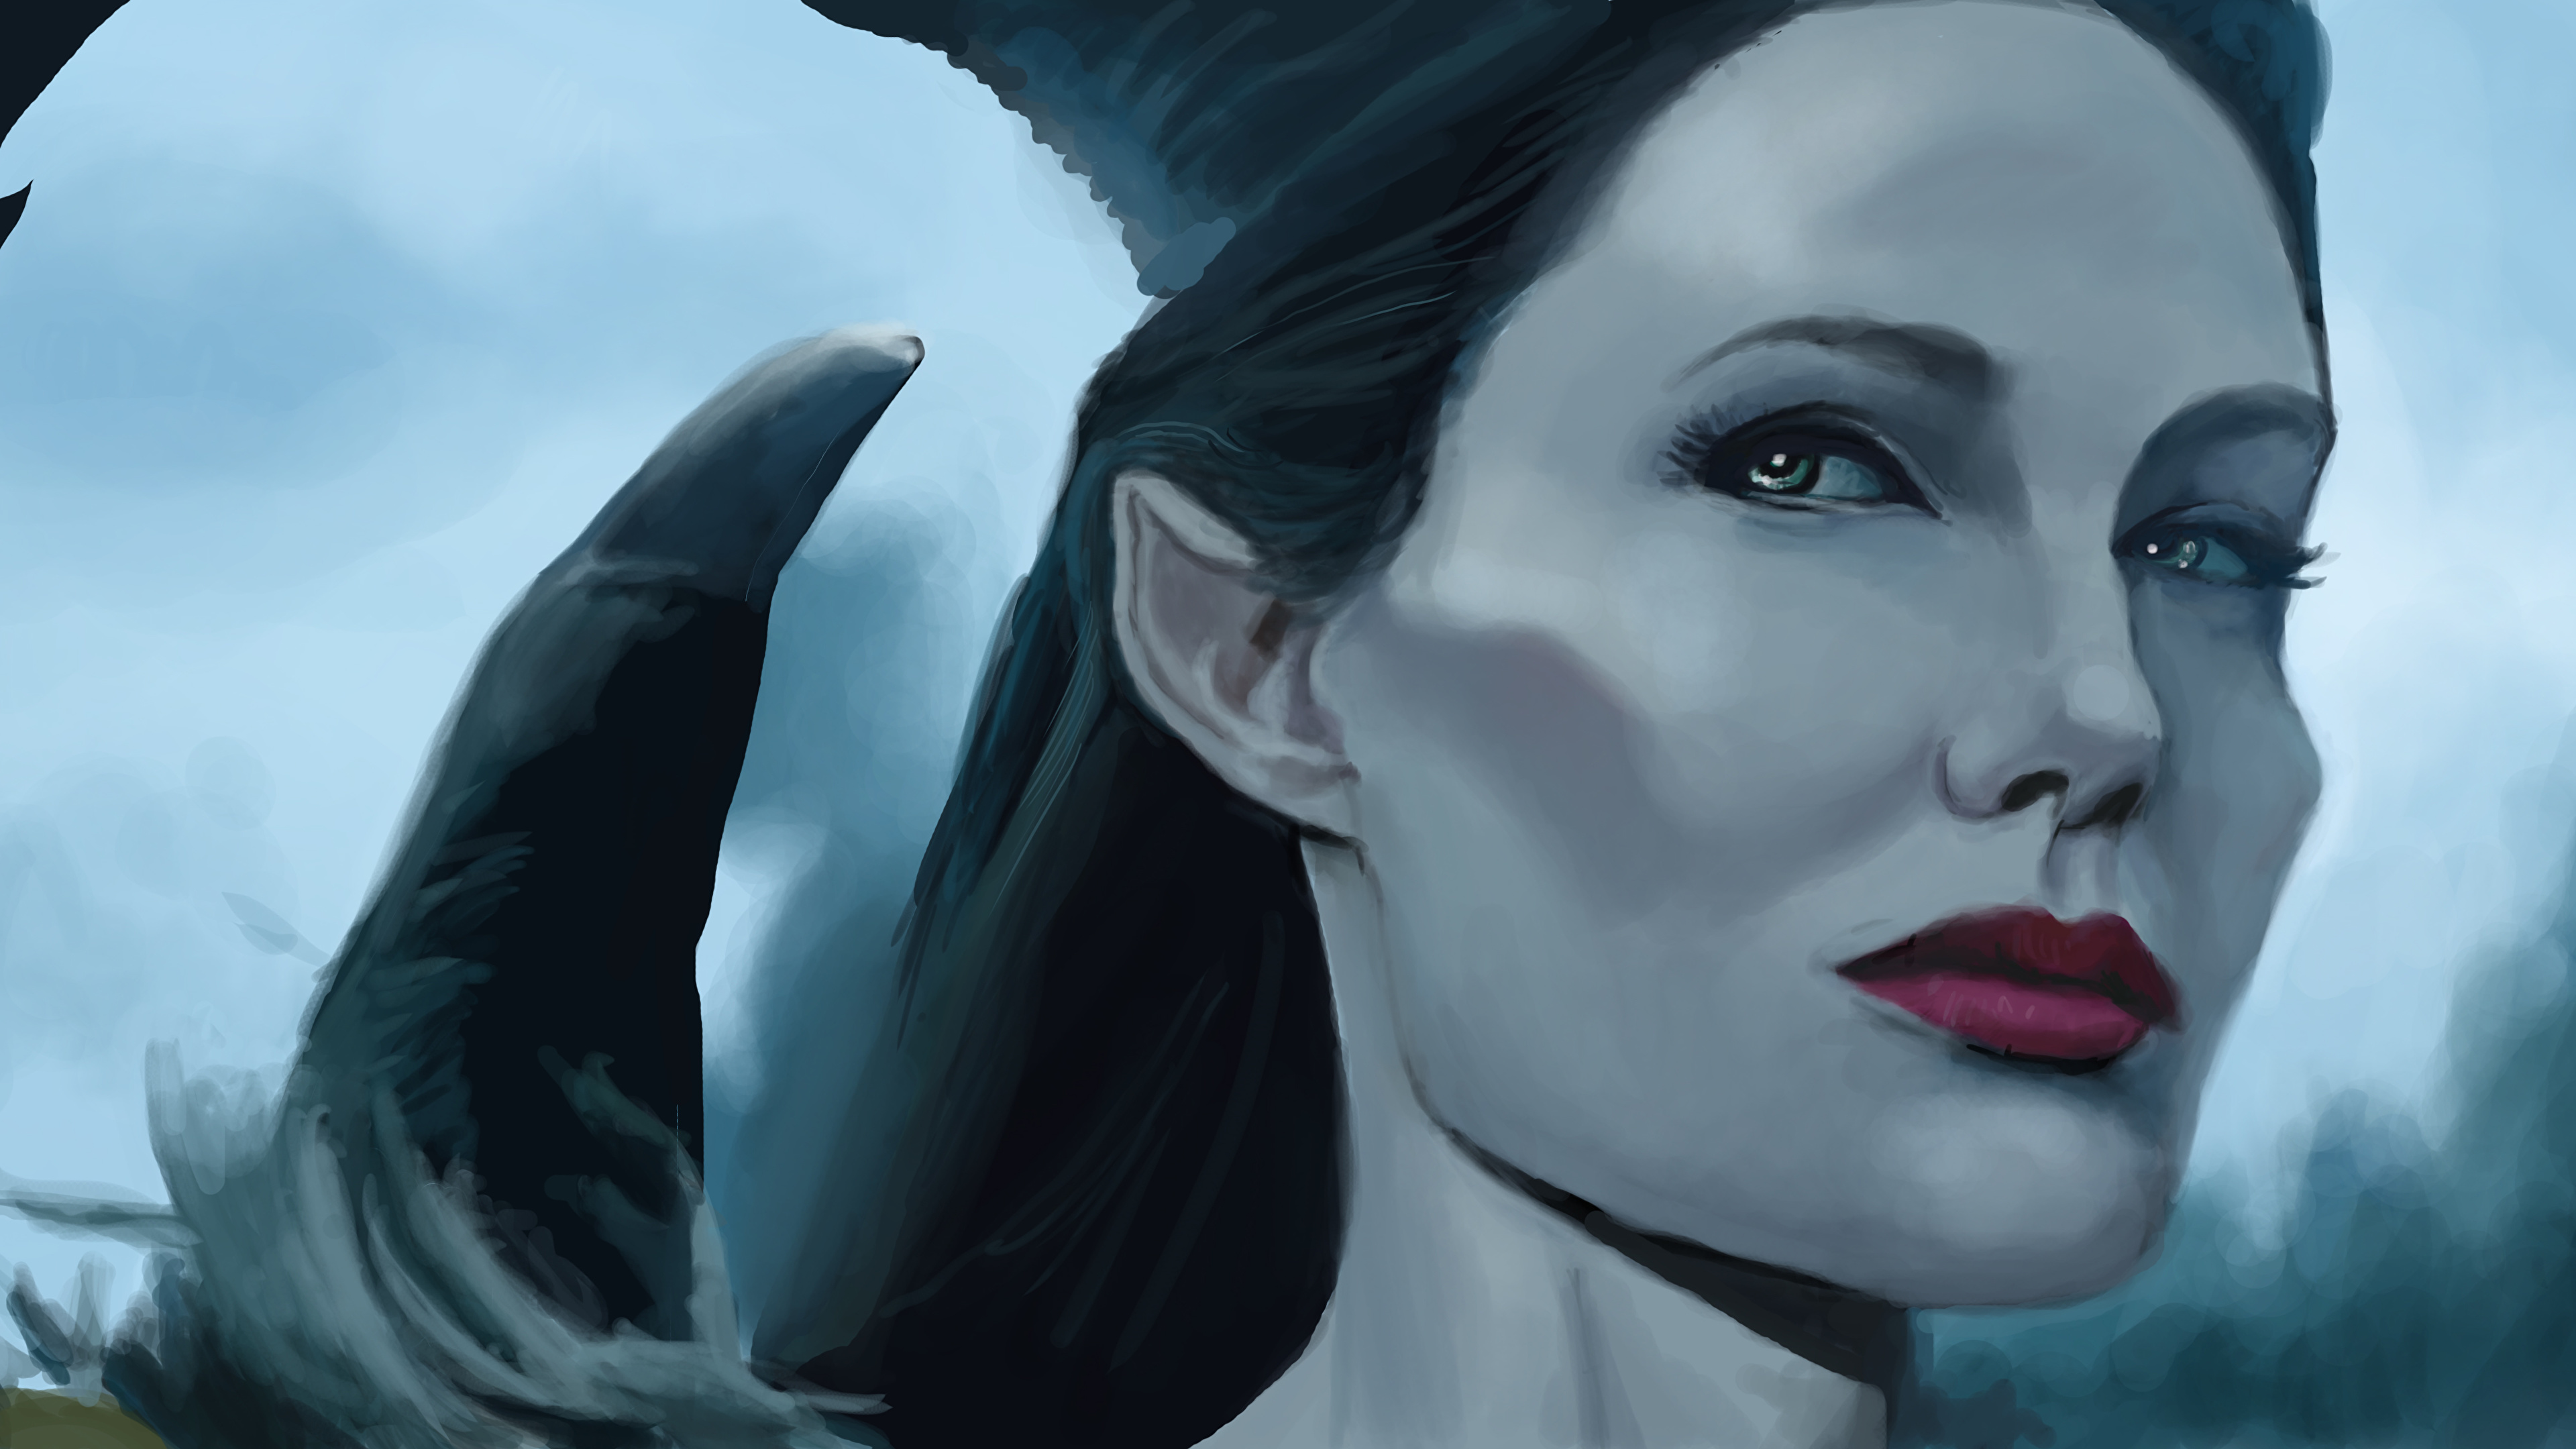 Pictures Maleficent Film Angelina Jolie Face Girls 3840x2160